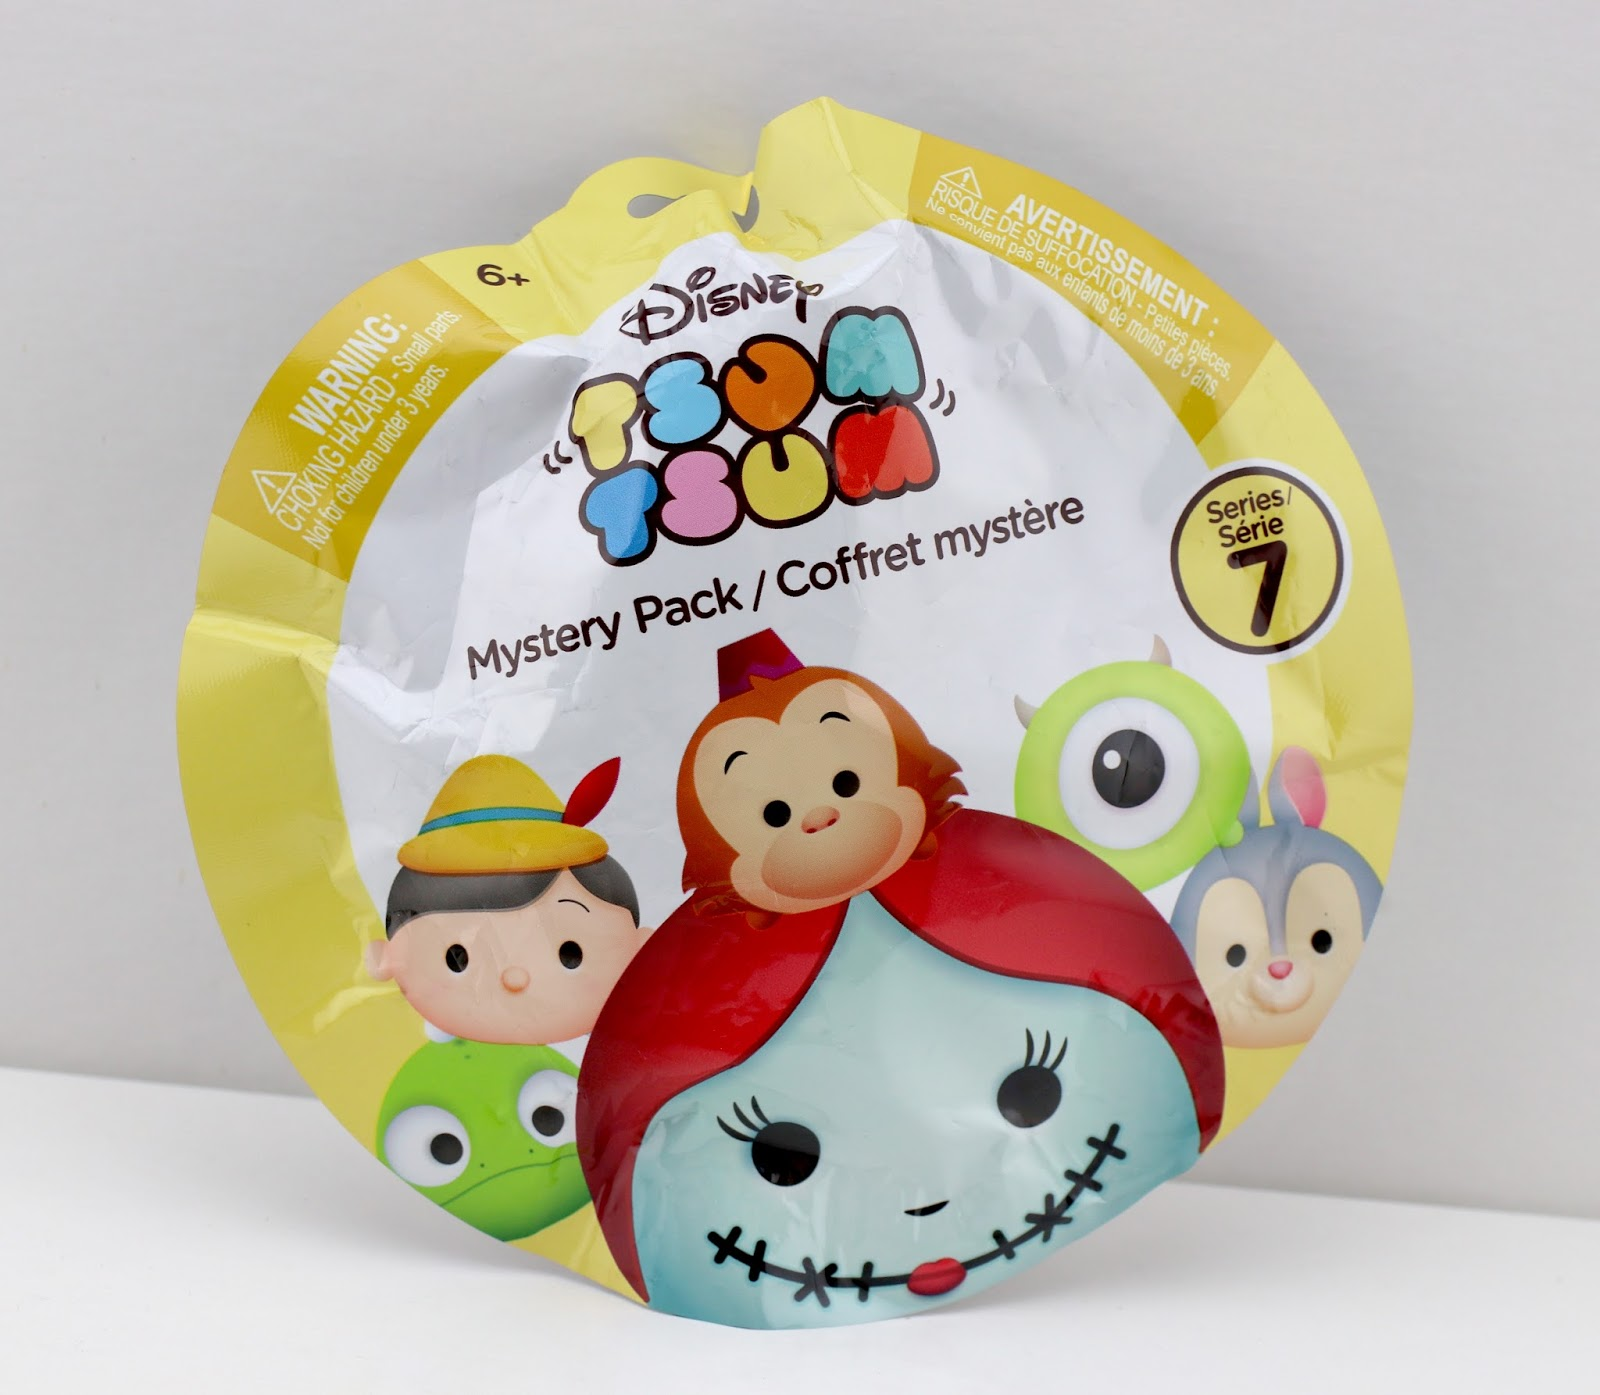 Disney Tsum Tsum Mystery Stack Packs Series 7 Jakks Pacific